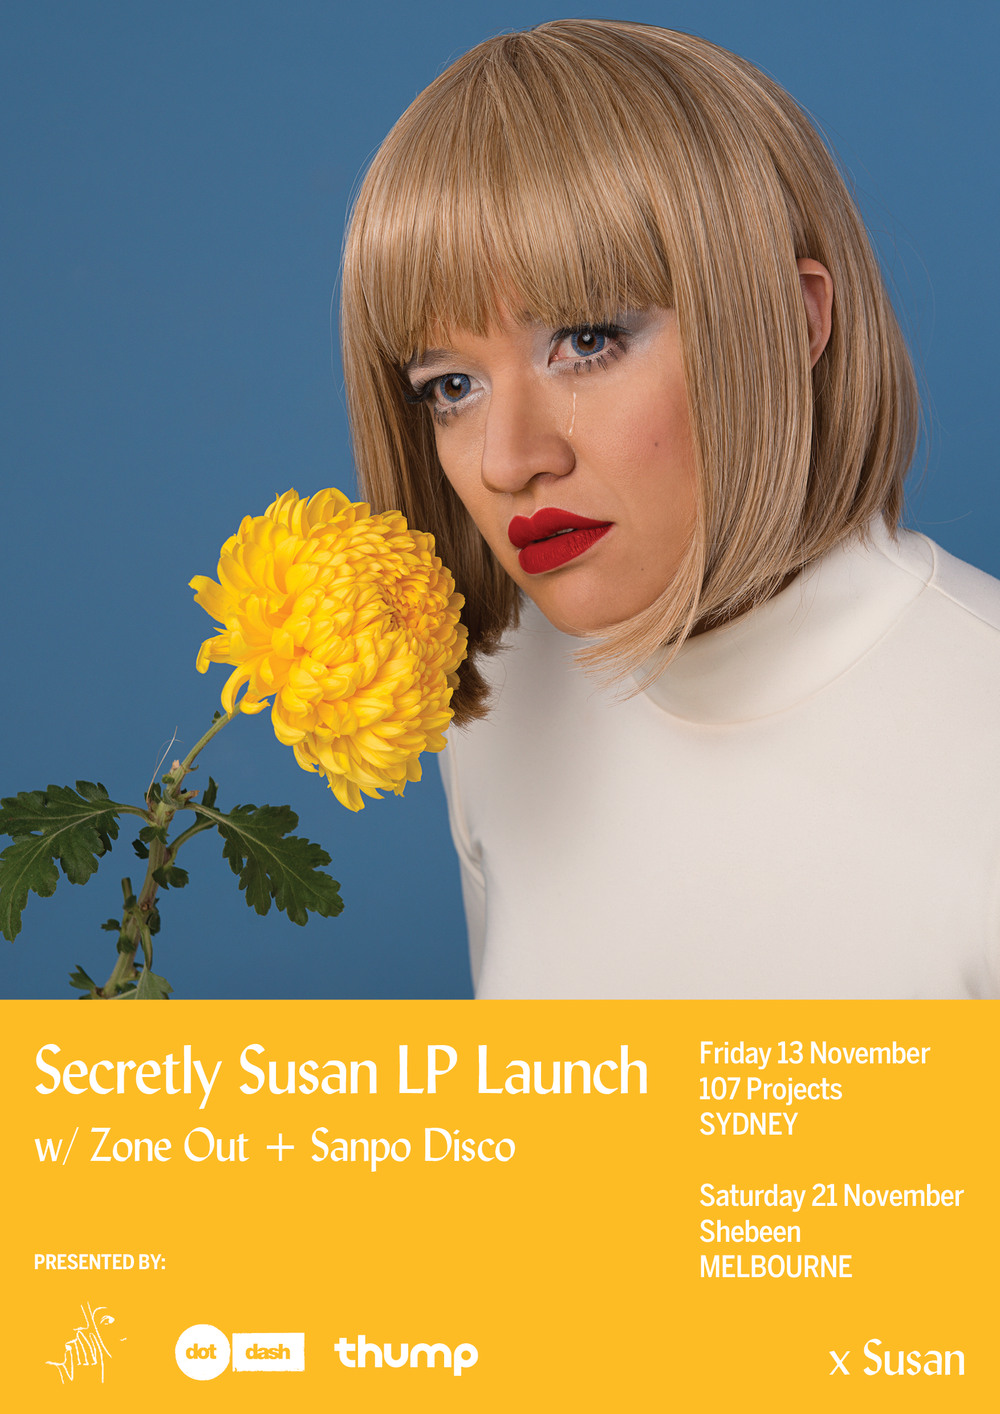 Finally, the Australian album launches for Secretly Susan. So excited.